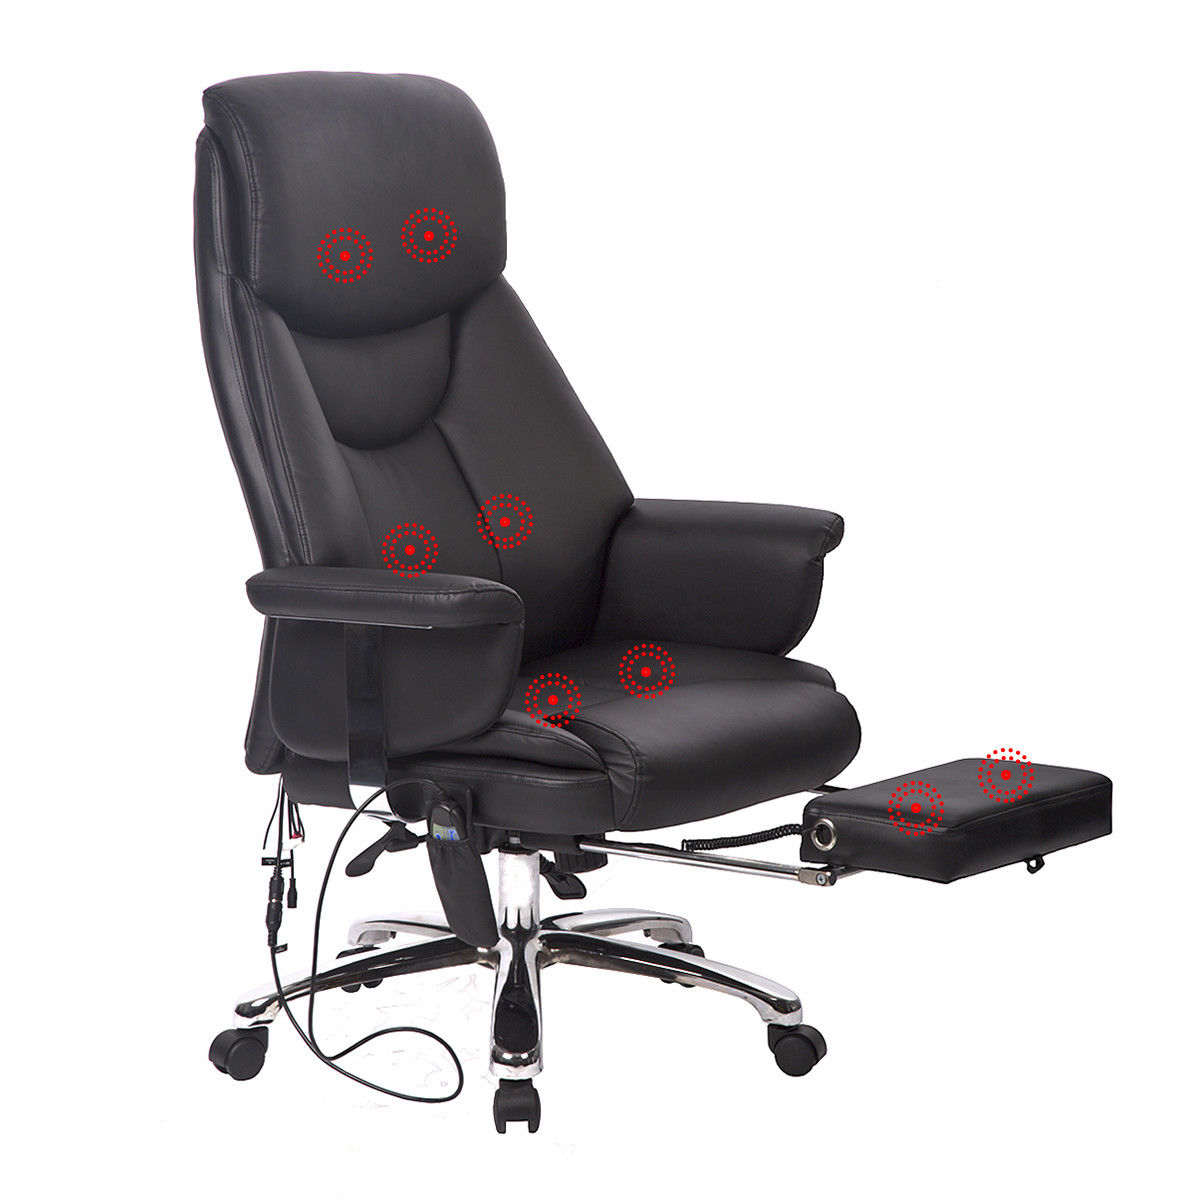 Office Chair Massager Executive Office Massage Chair Vibrating Ergonomic